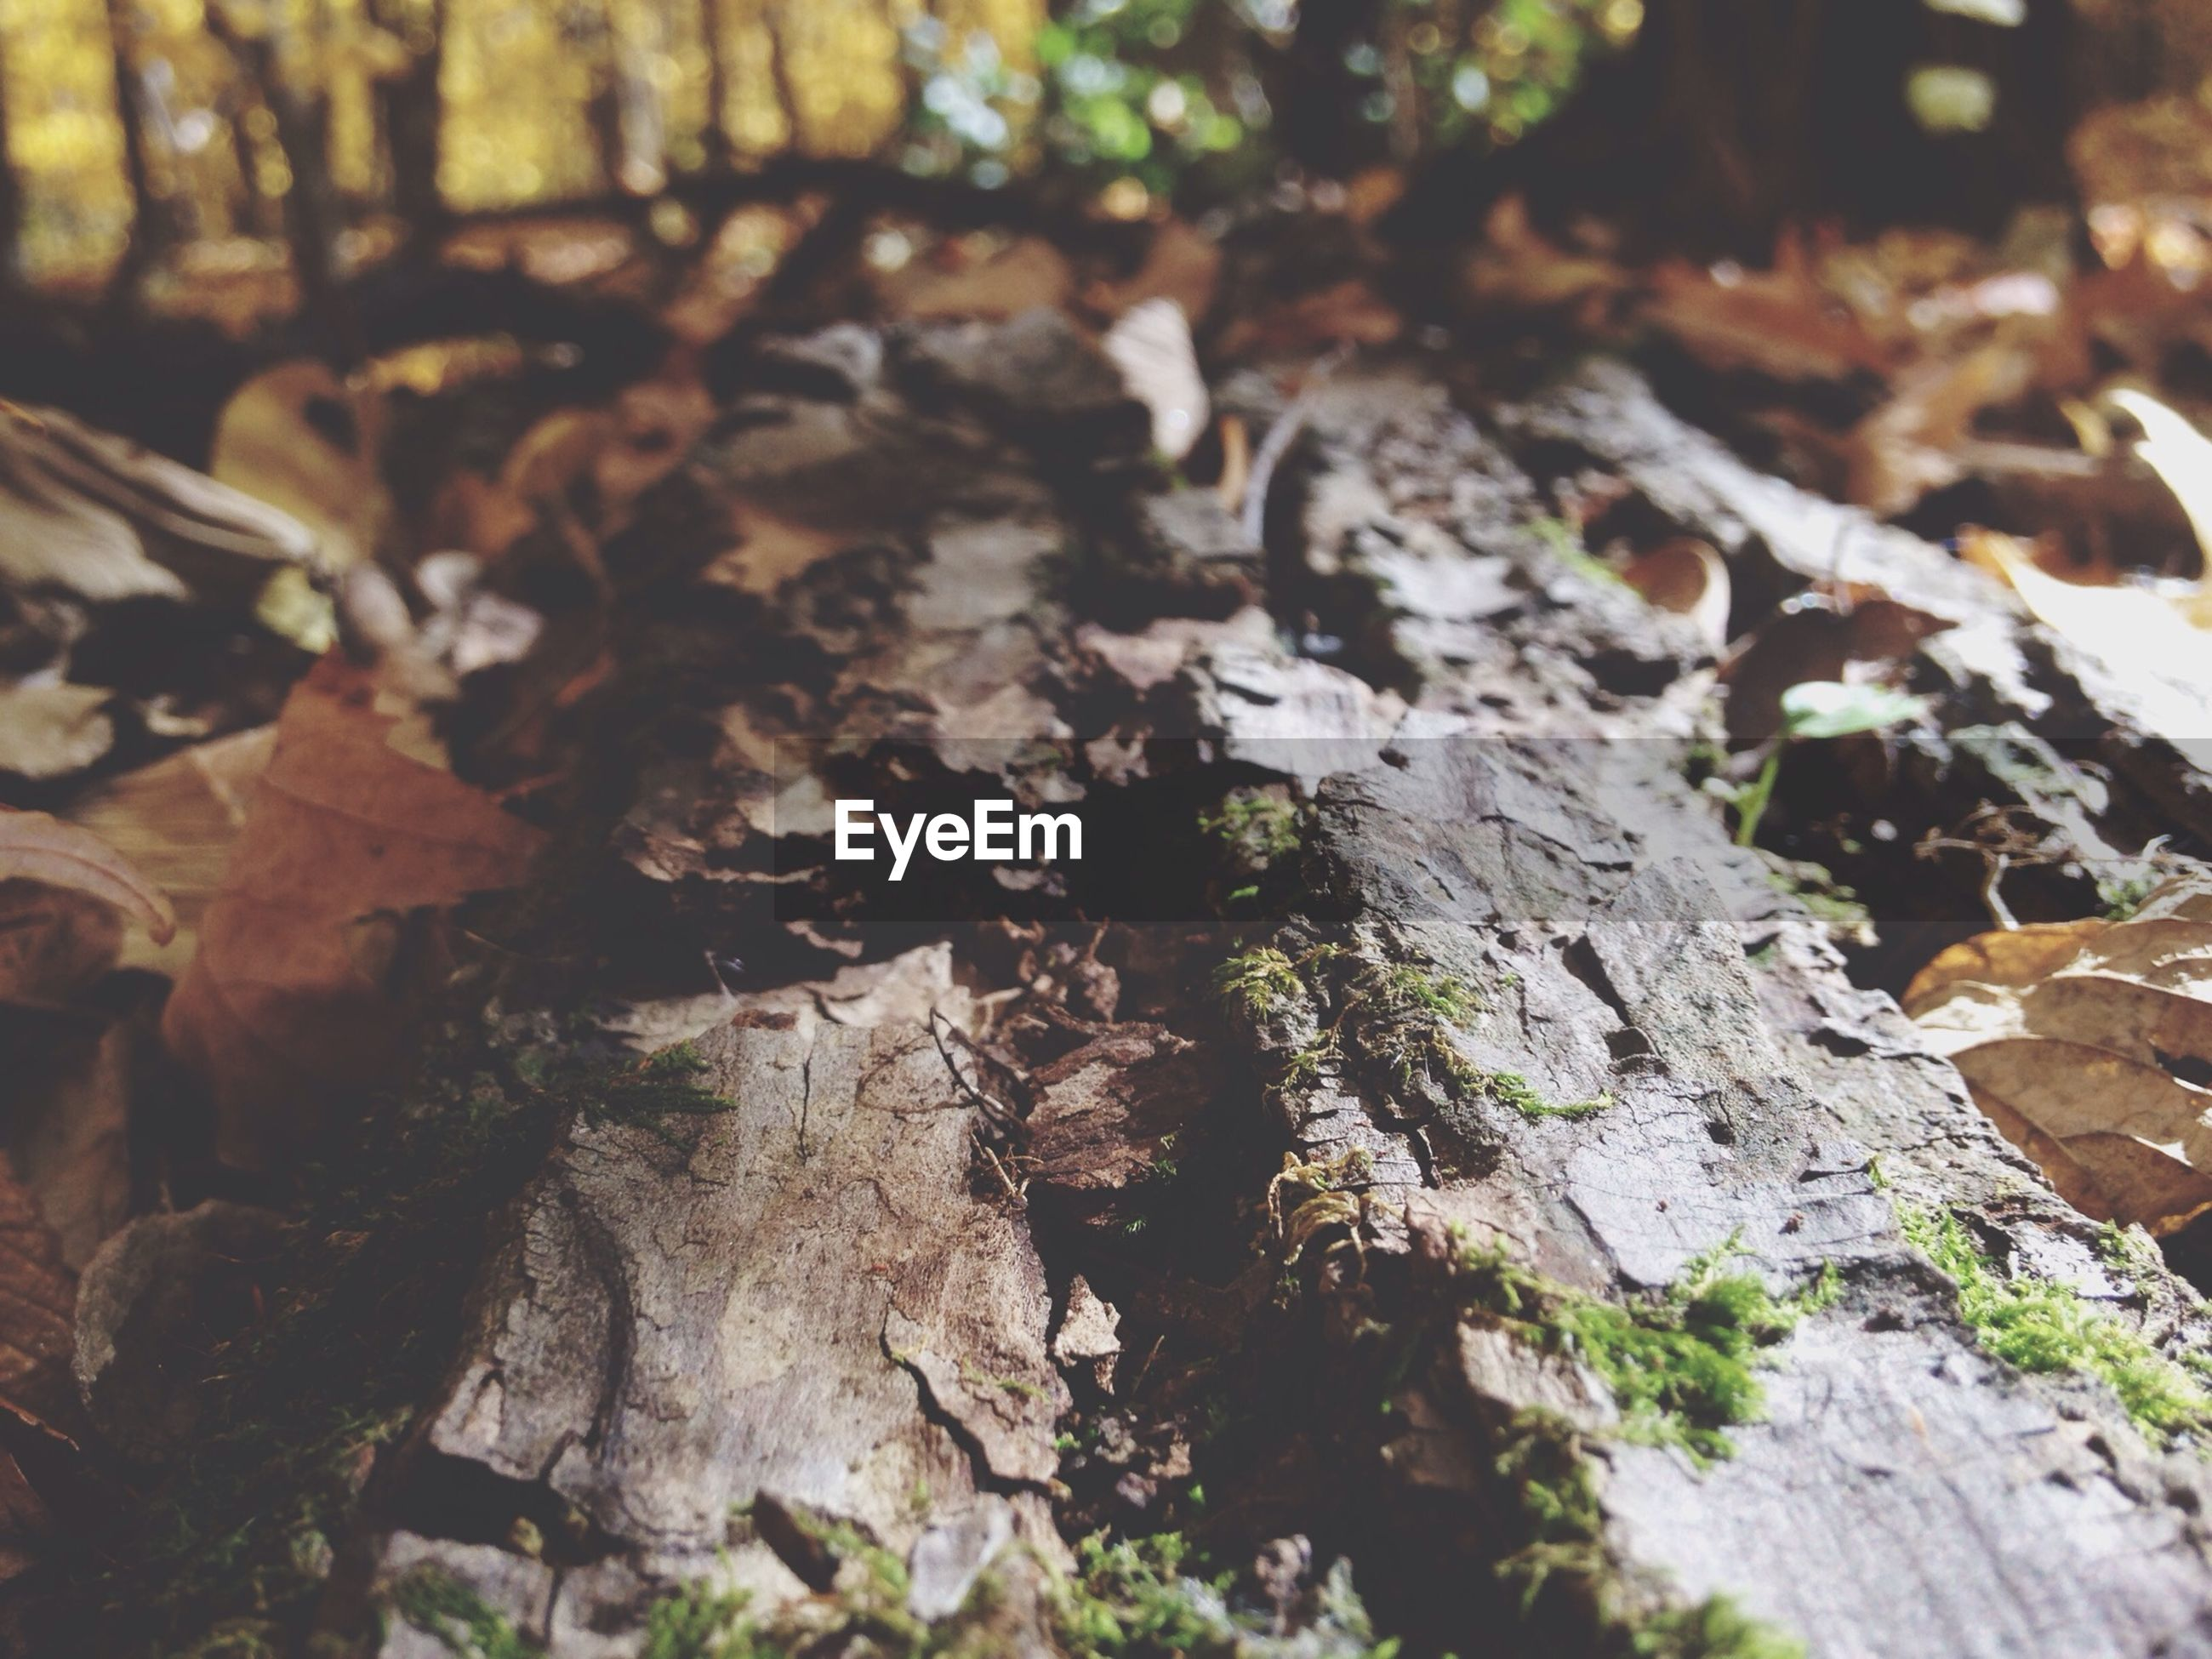 textured, tree trunk, close-up, nature, tree, rough, growth, focus on foreground, bark, forest, moss, rock - object, tranquility, day, leaf, natural pattern, outdoors, selective focus, no people, wood - material